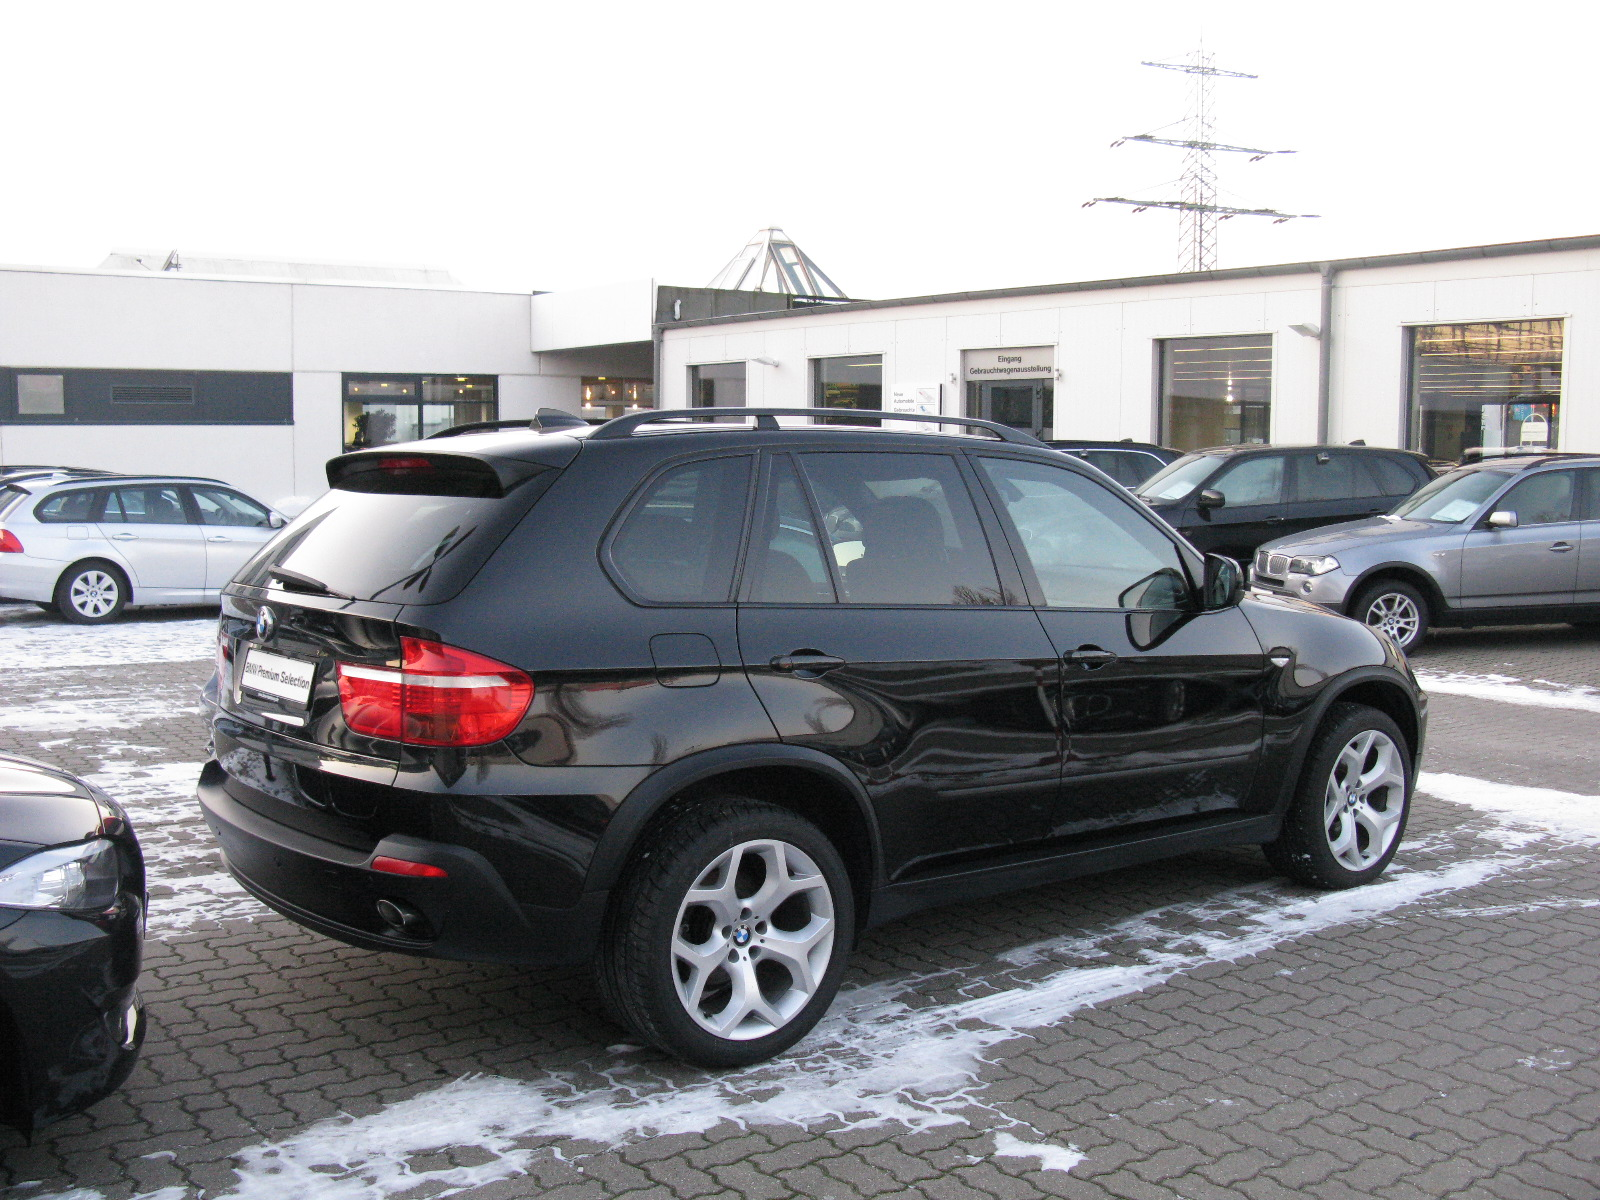 File Bmw X5 3 0d E70 6841854209 Jpg Wikimedia Commons